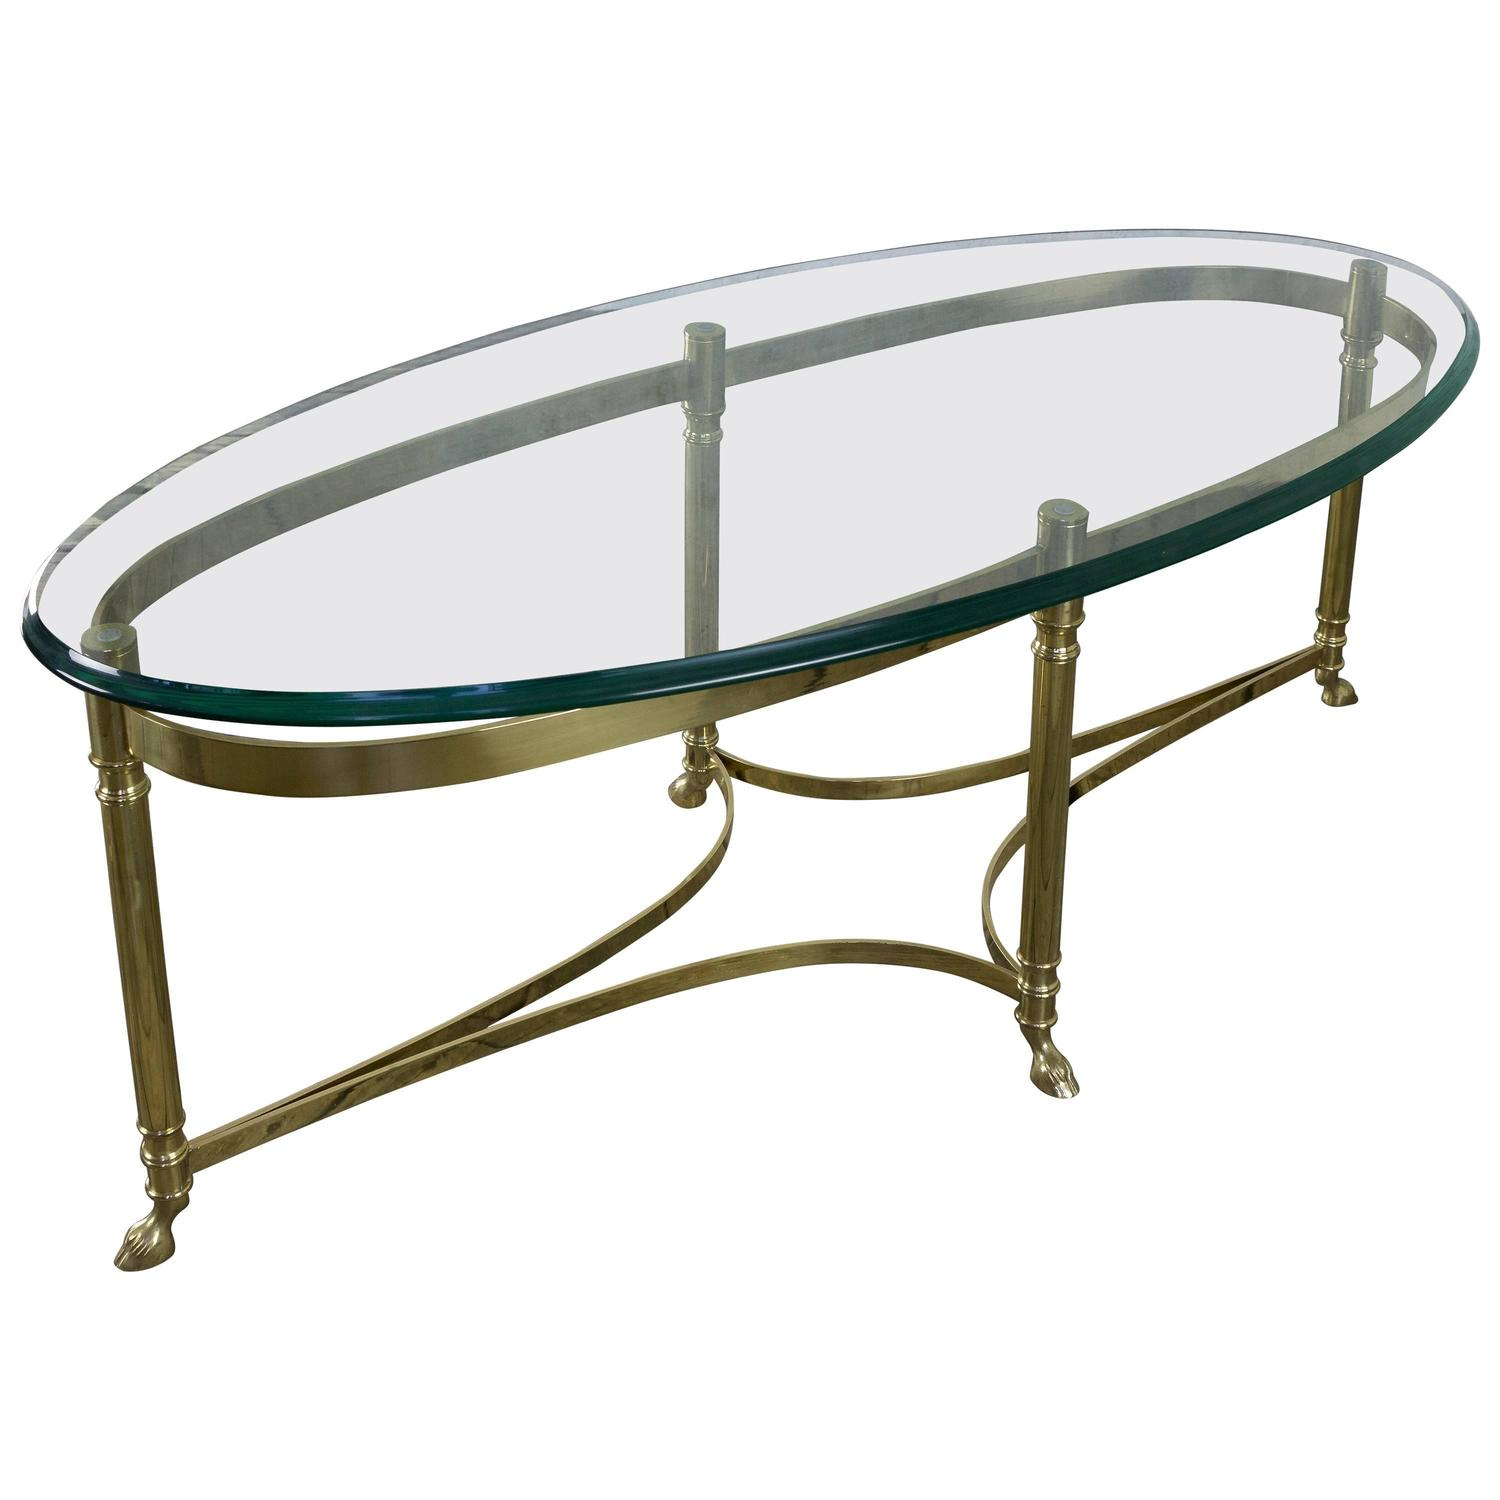 Italian oval brass and glass coffee table 1940s at 1stdibs Glass oval coffee tables